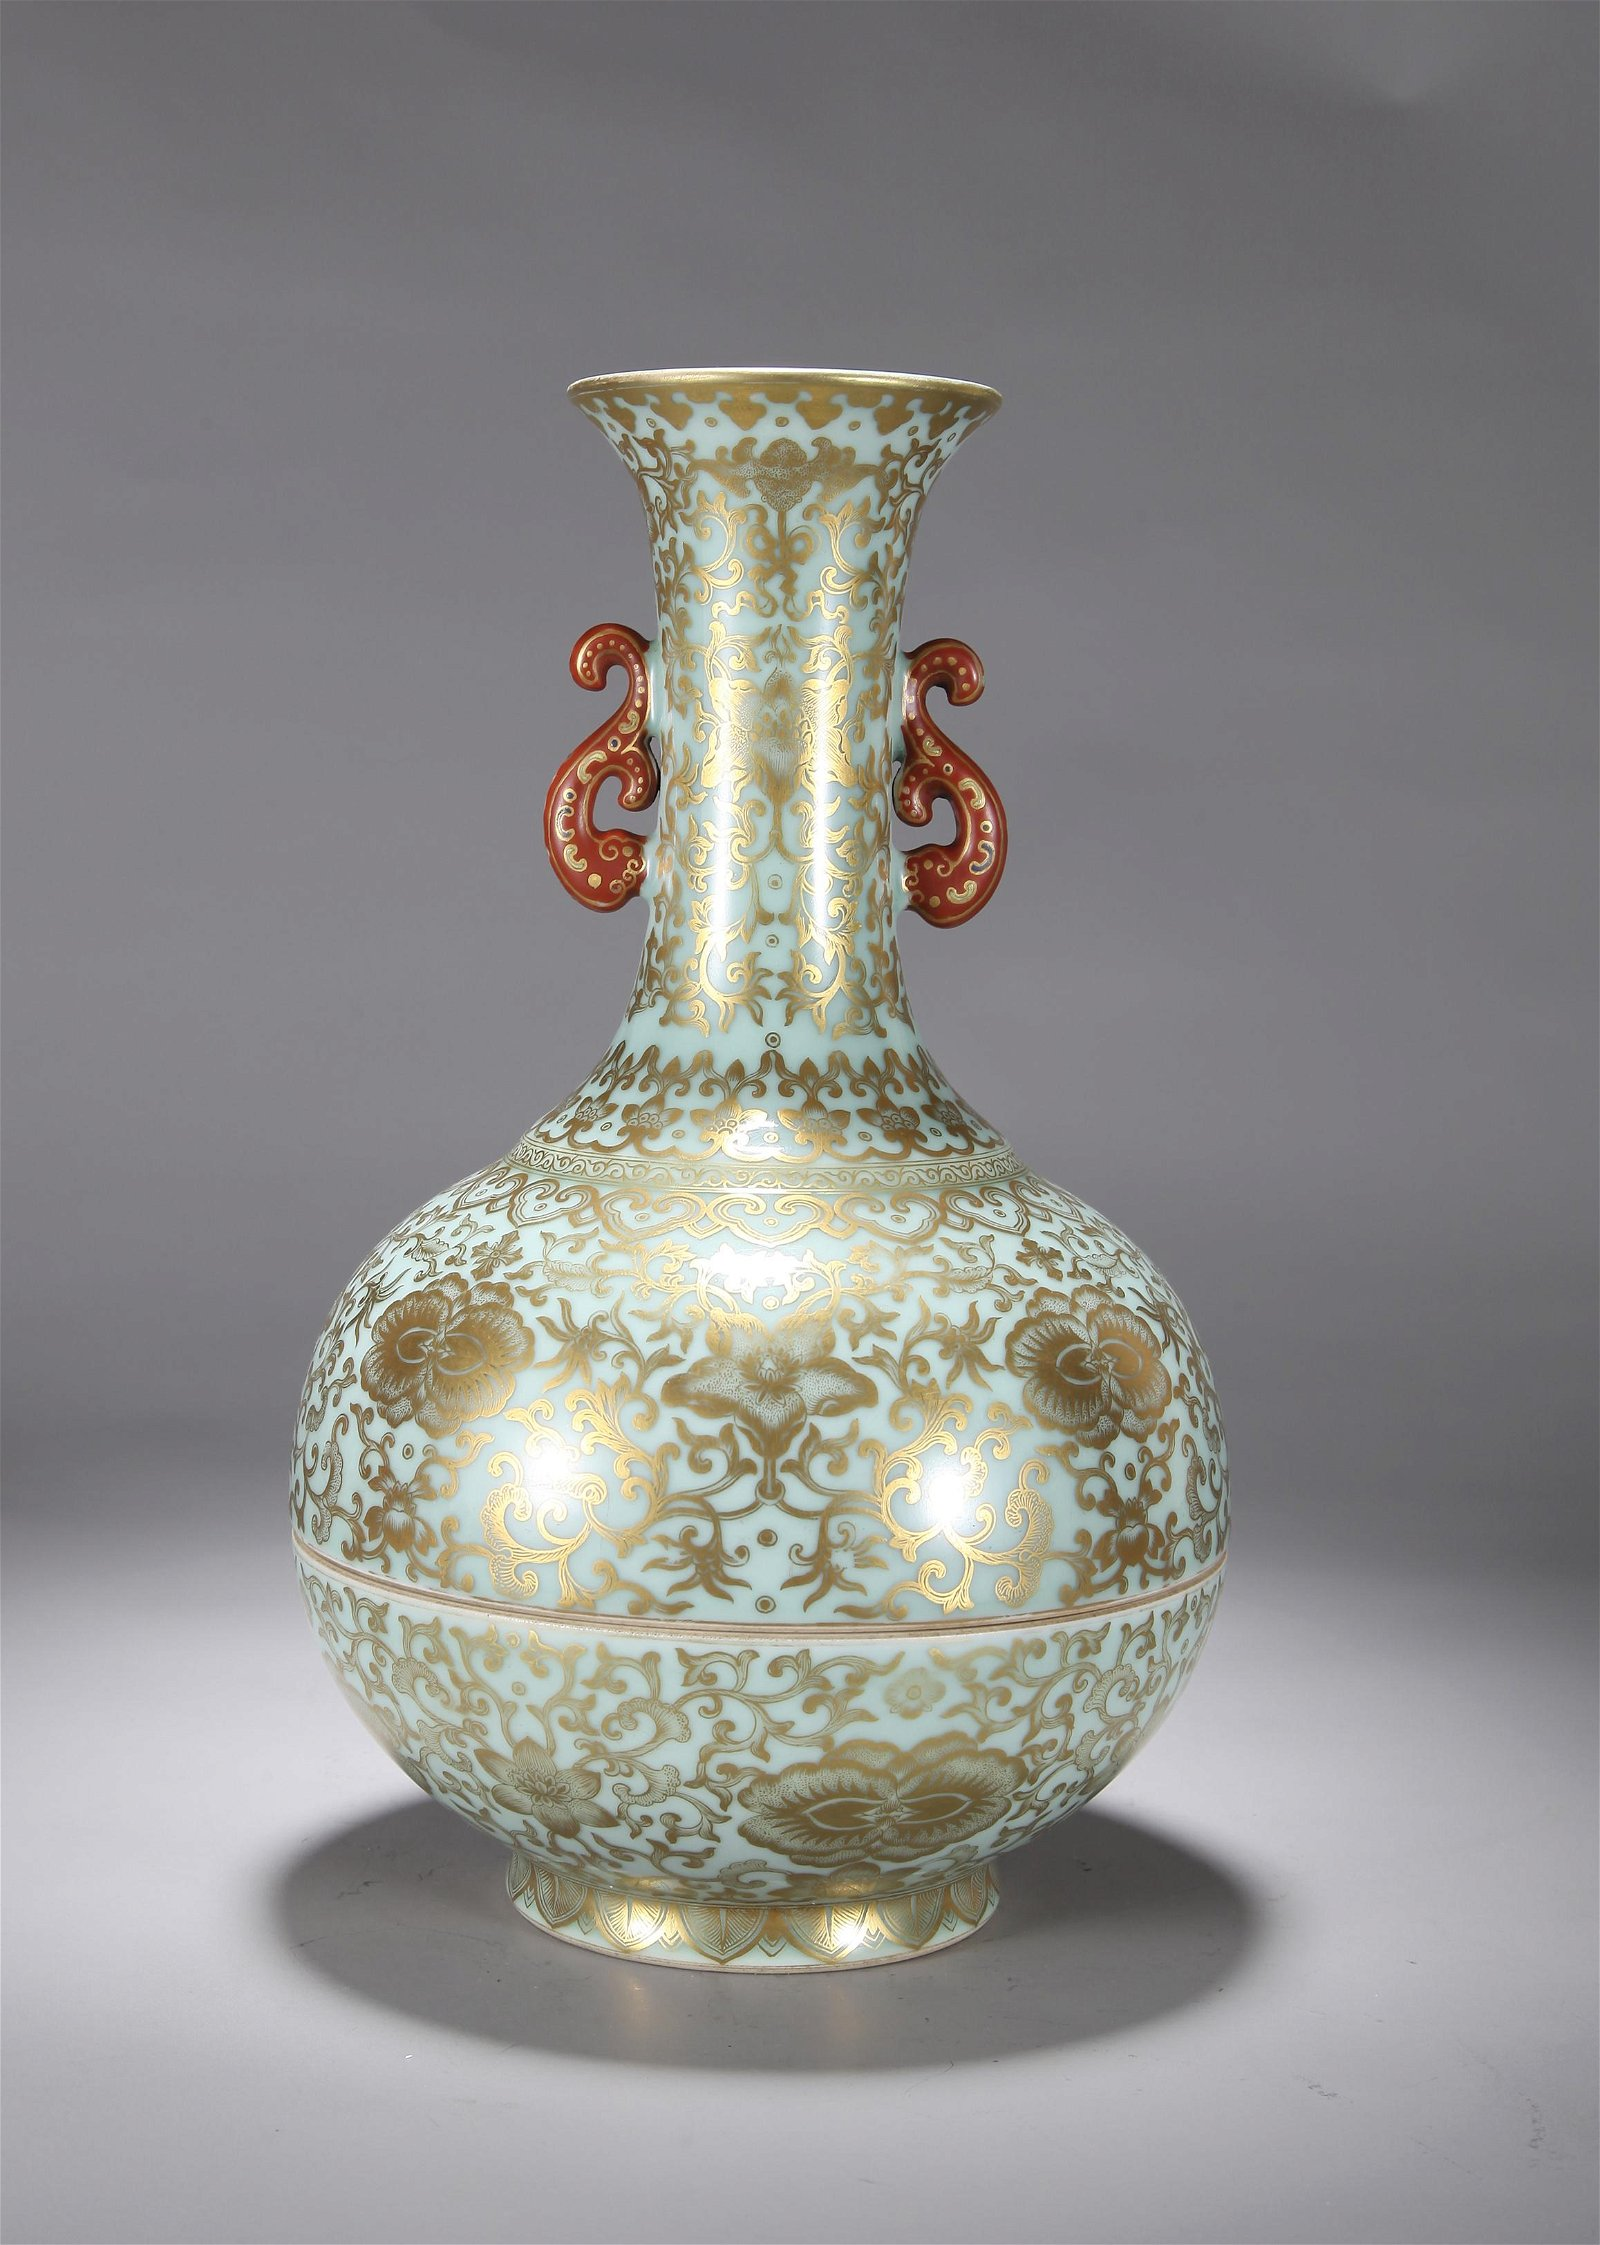 A CHINESE GILT DECORATED CELADON VASE, QING DYNASTY